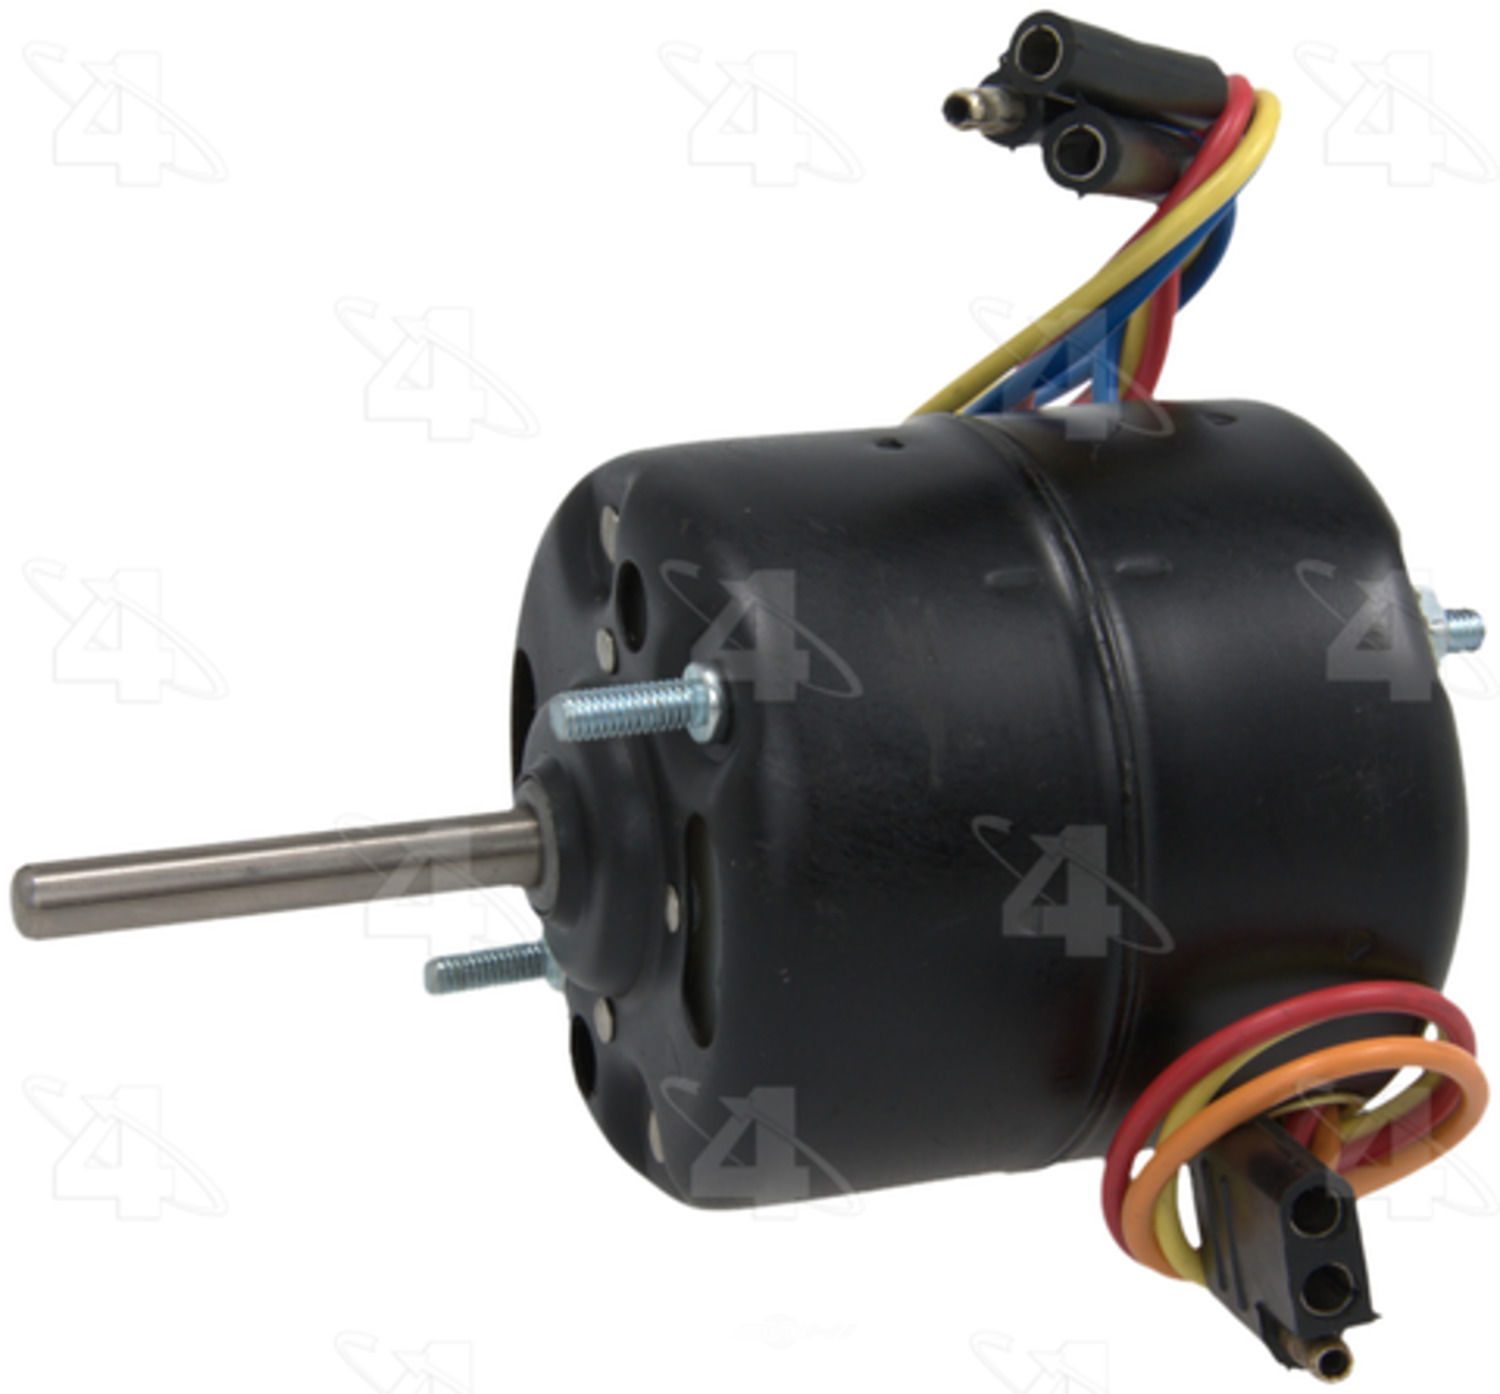 Jeep Wrangler Blower Motor From Best Value Auto Parts